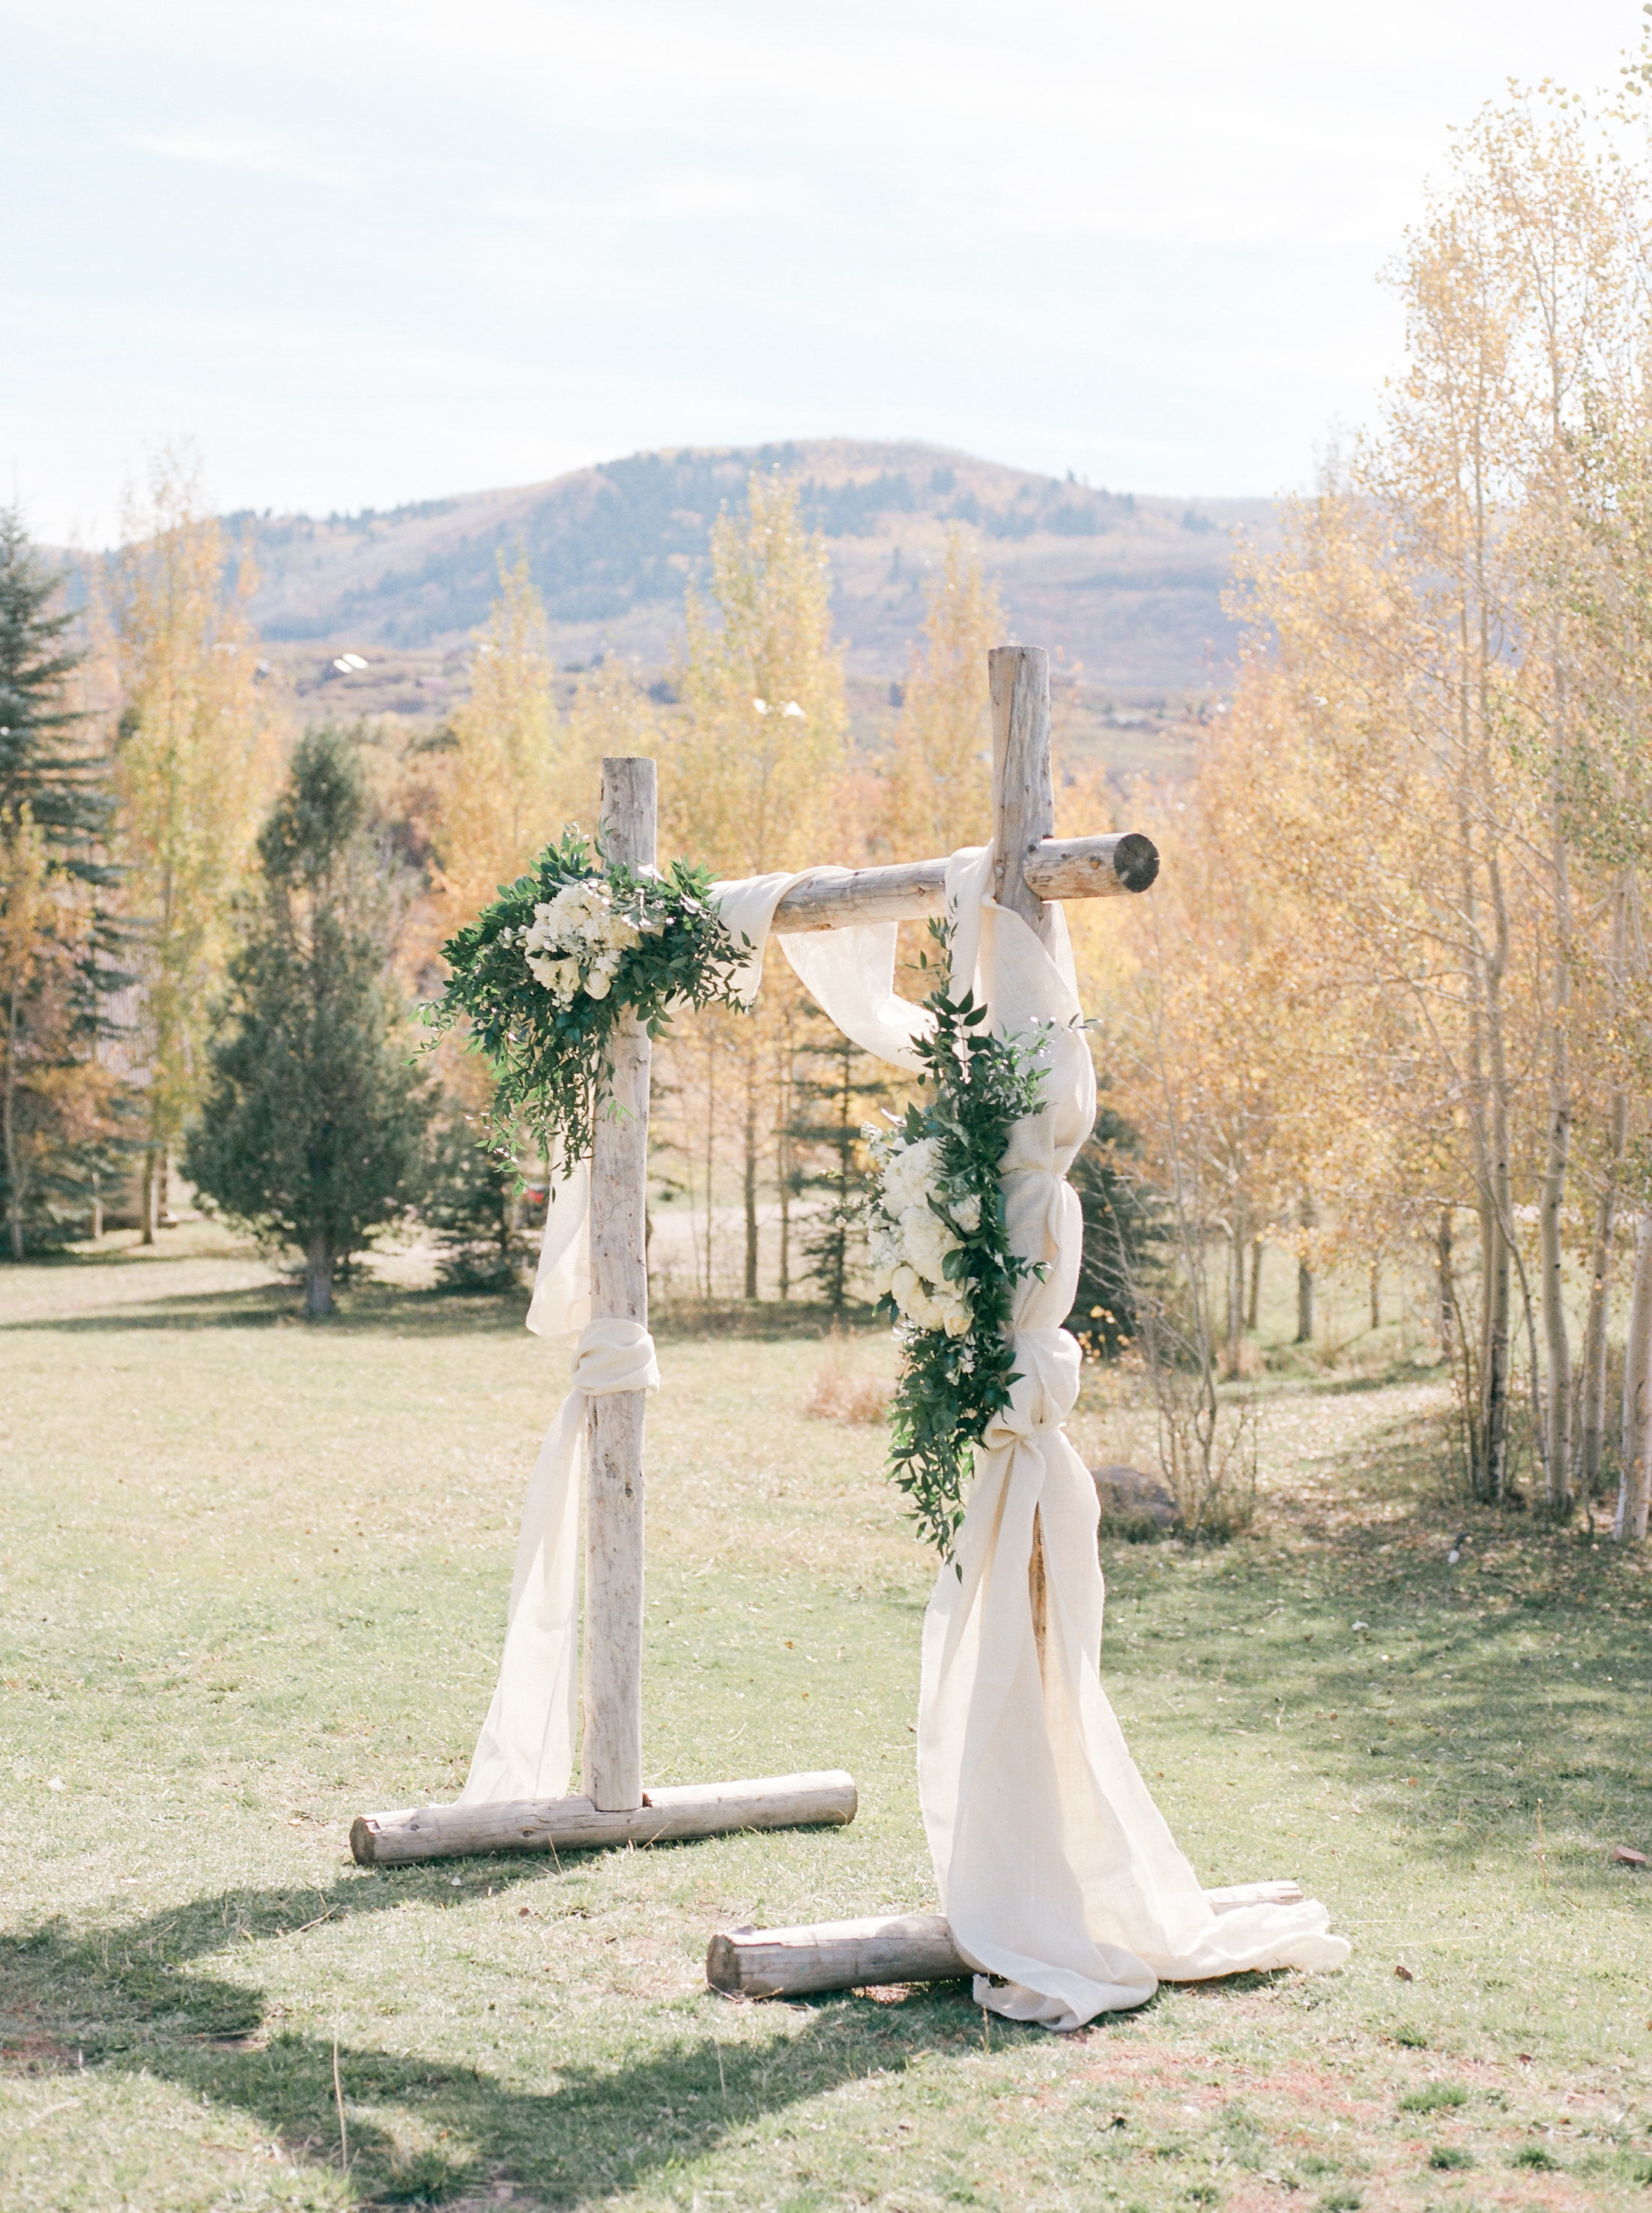 Red Cliff Ranch Wedding | Rustic Elegance | Fall Wedding | Michelle Leo Events | Utah Event Planner and Designer | Heather Nan Photography